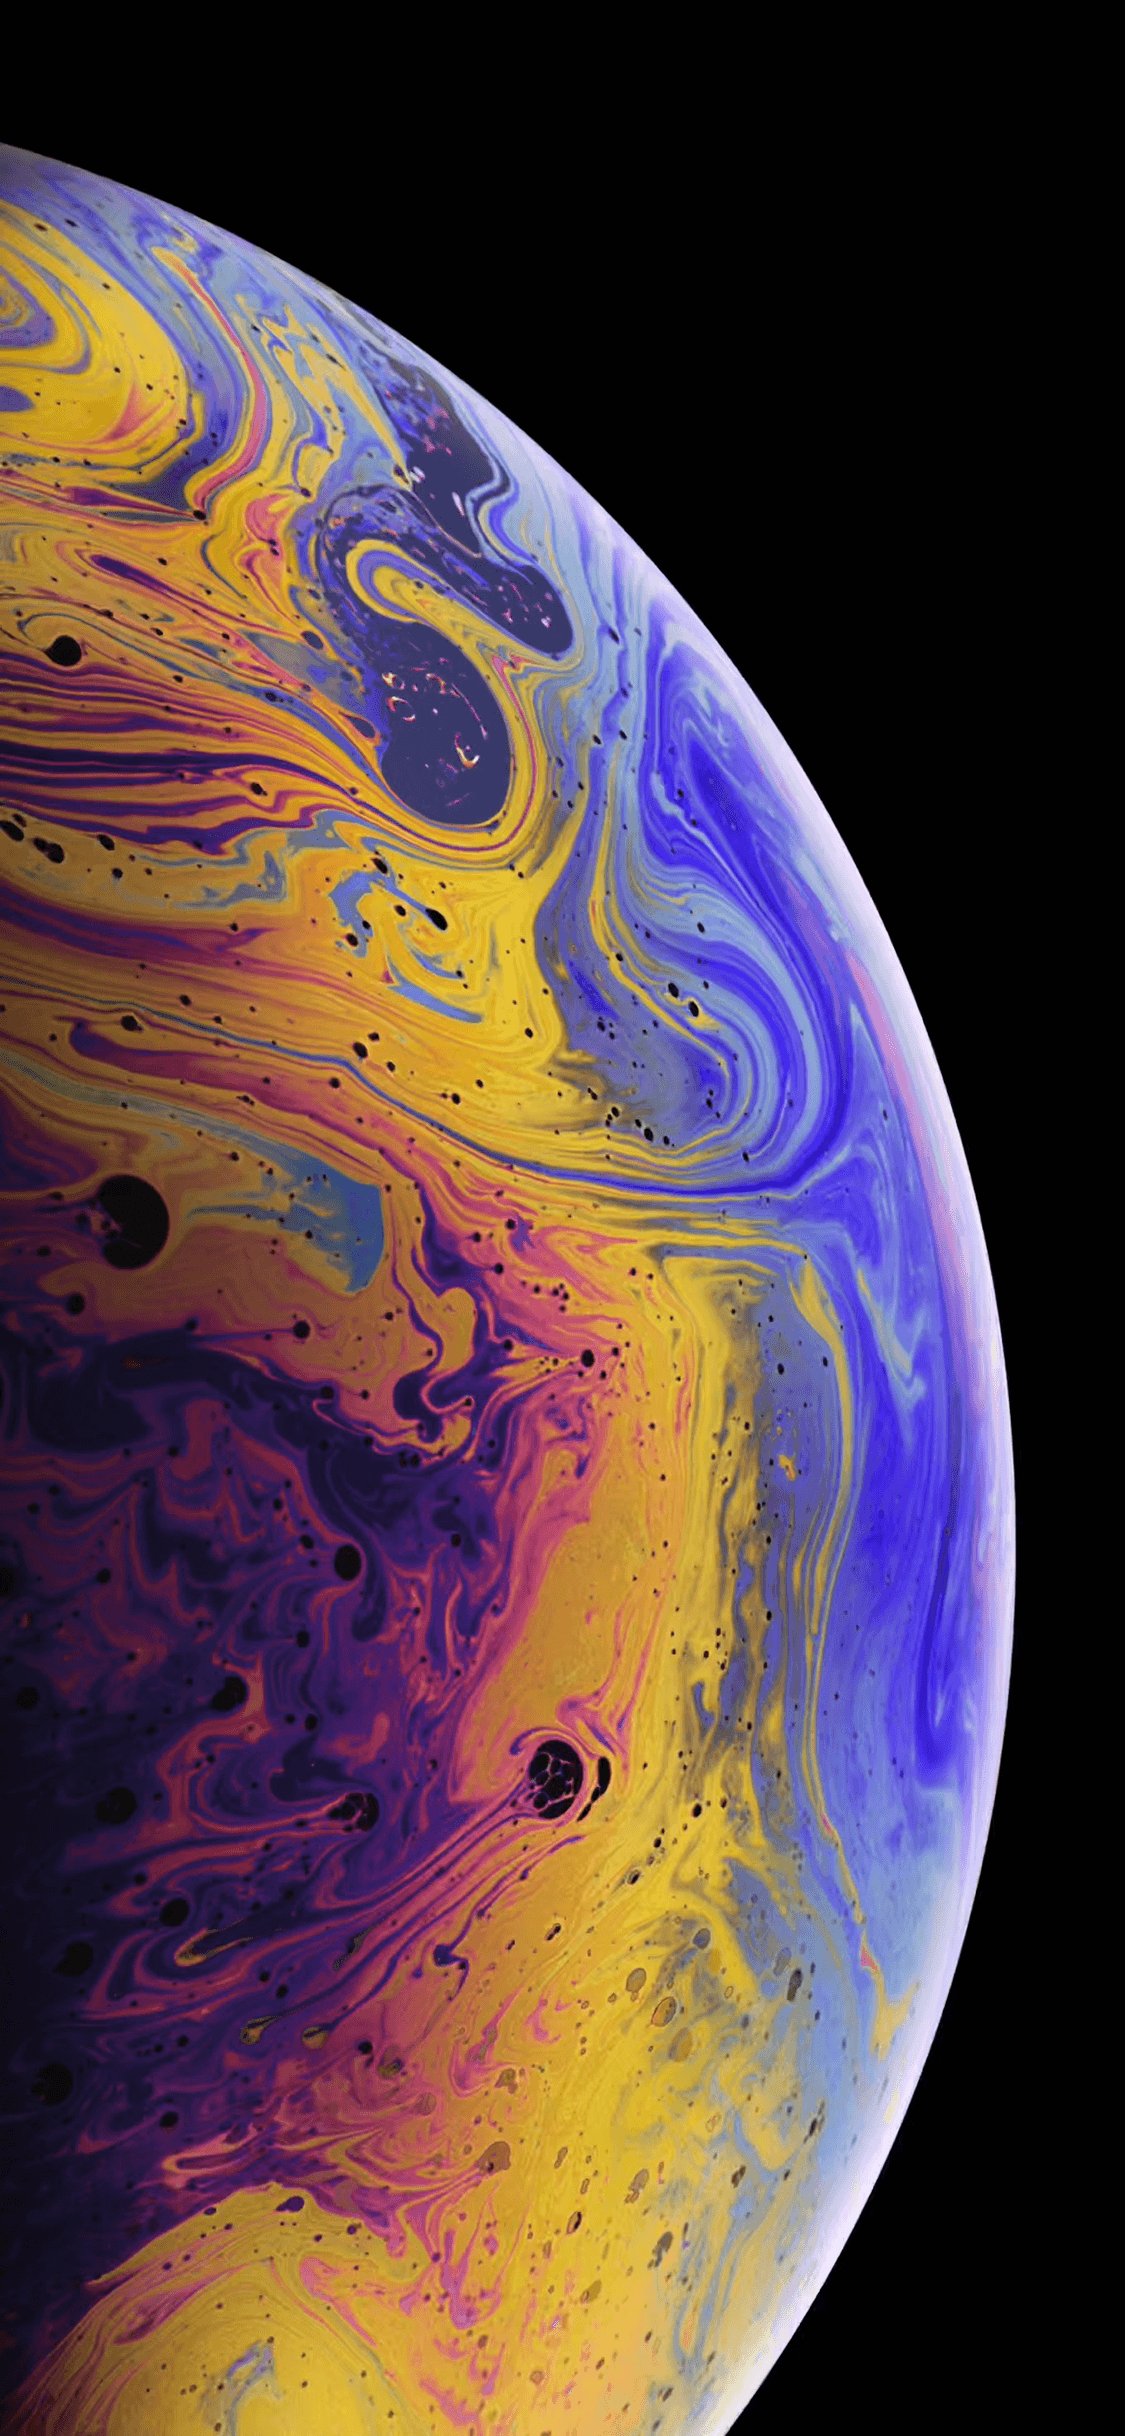 Iphone Xs Max Wallpapers Top Free Iphone Xs Max Backgrounds